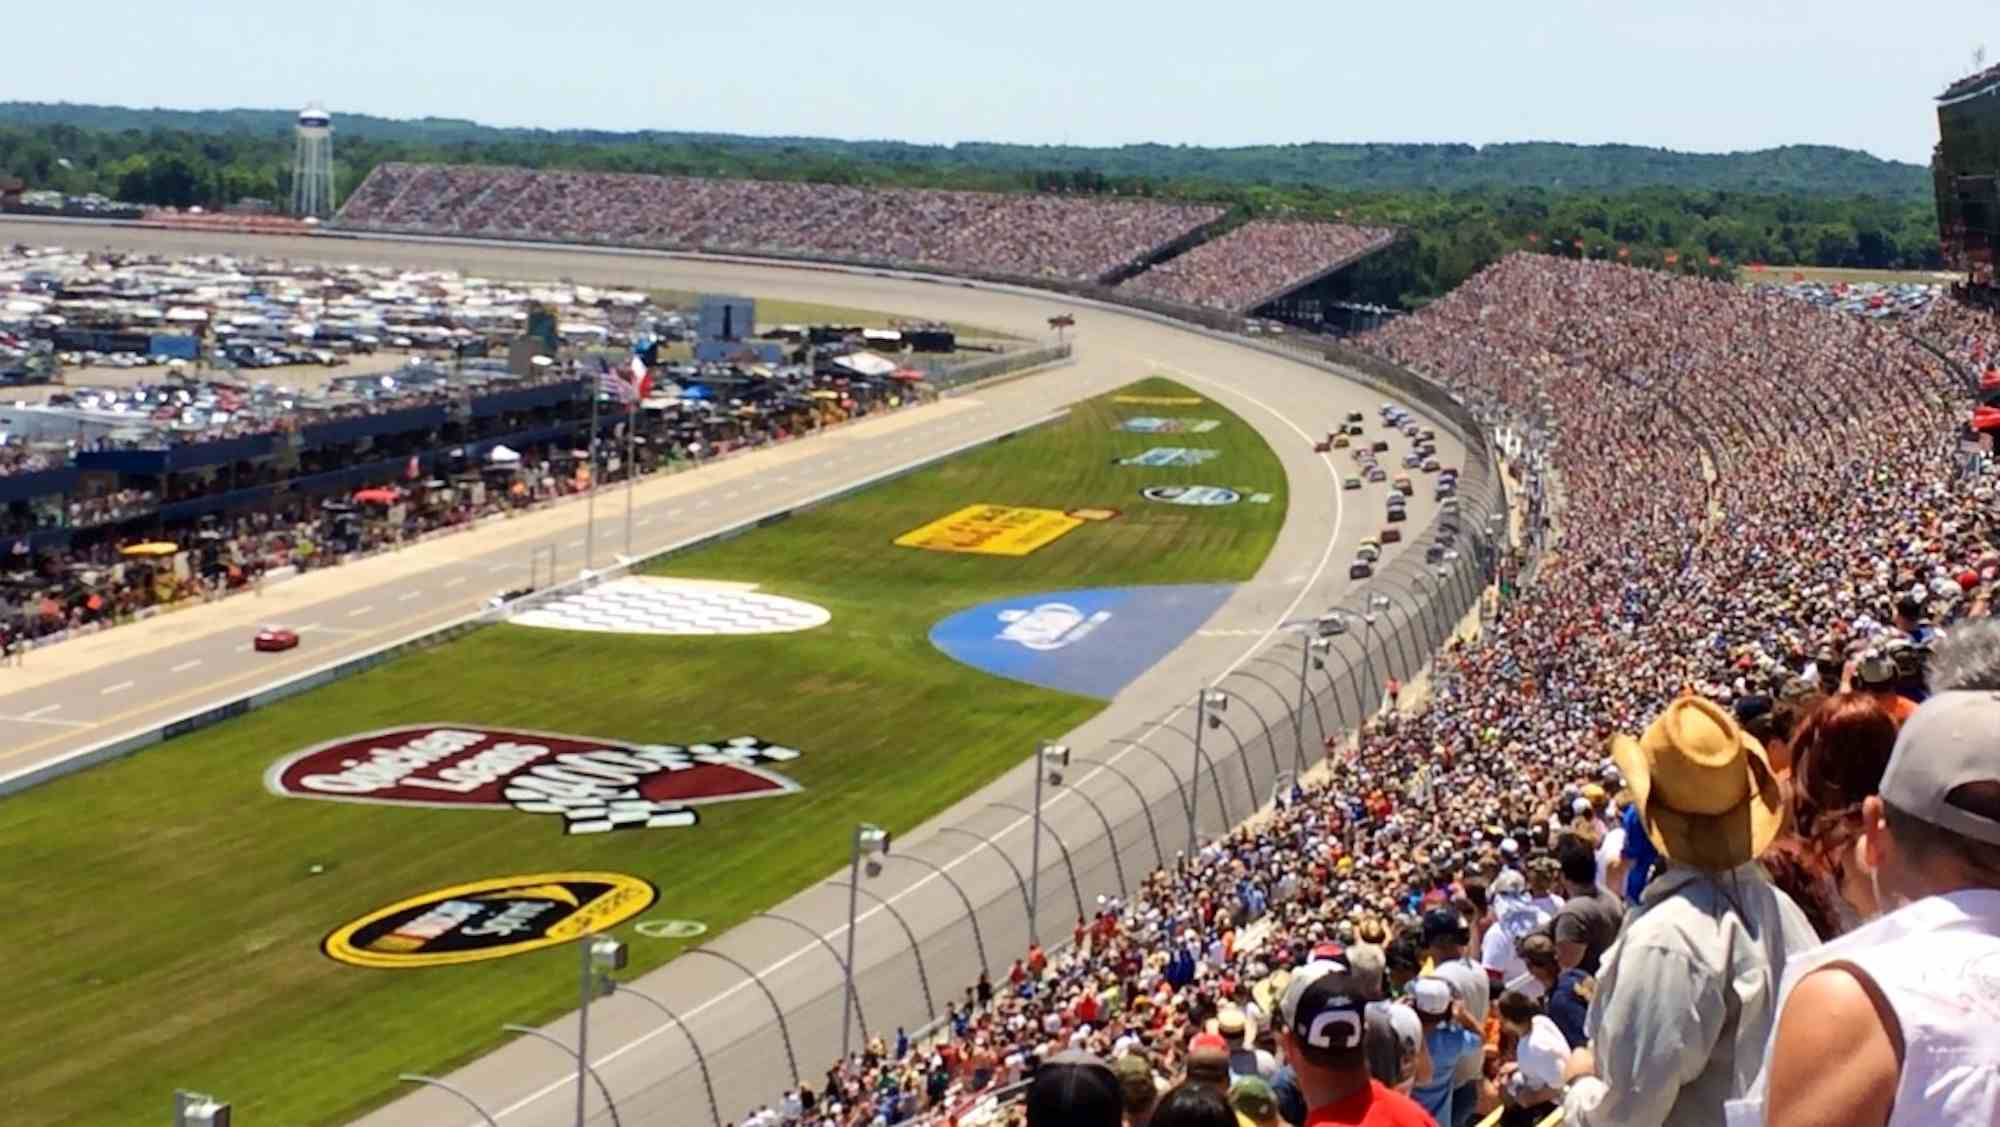 Racing action after a restart at the 2014 Quicken Loans 400 at Michigan International Speedway.